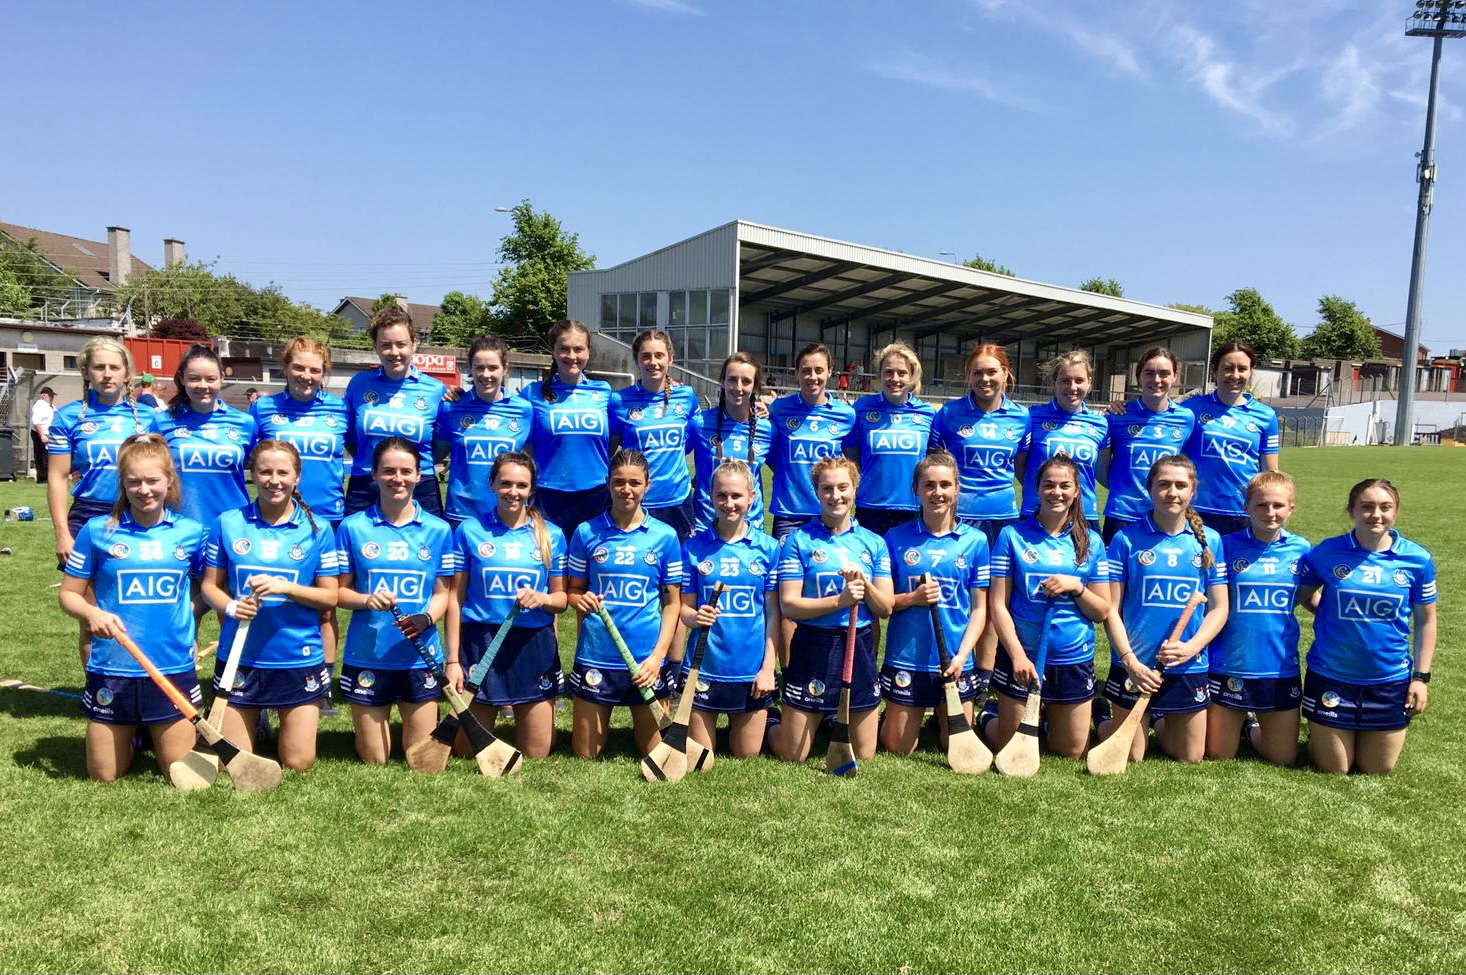 Dublin Senior Camogie squad pictured before their opening game of the 2021 Camogie Championship against Cork